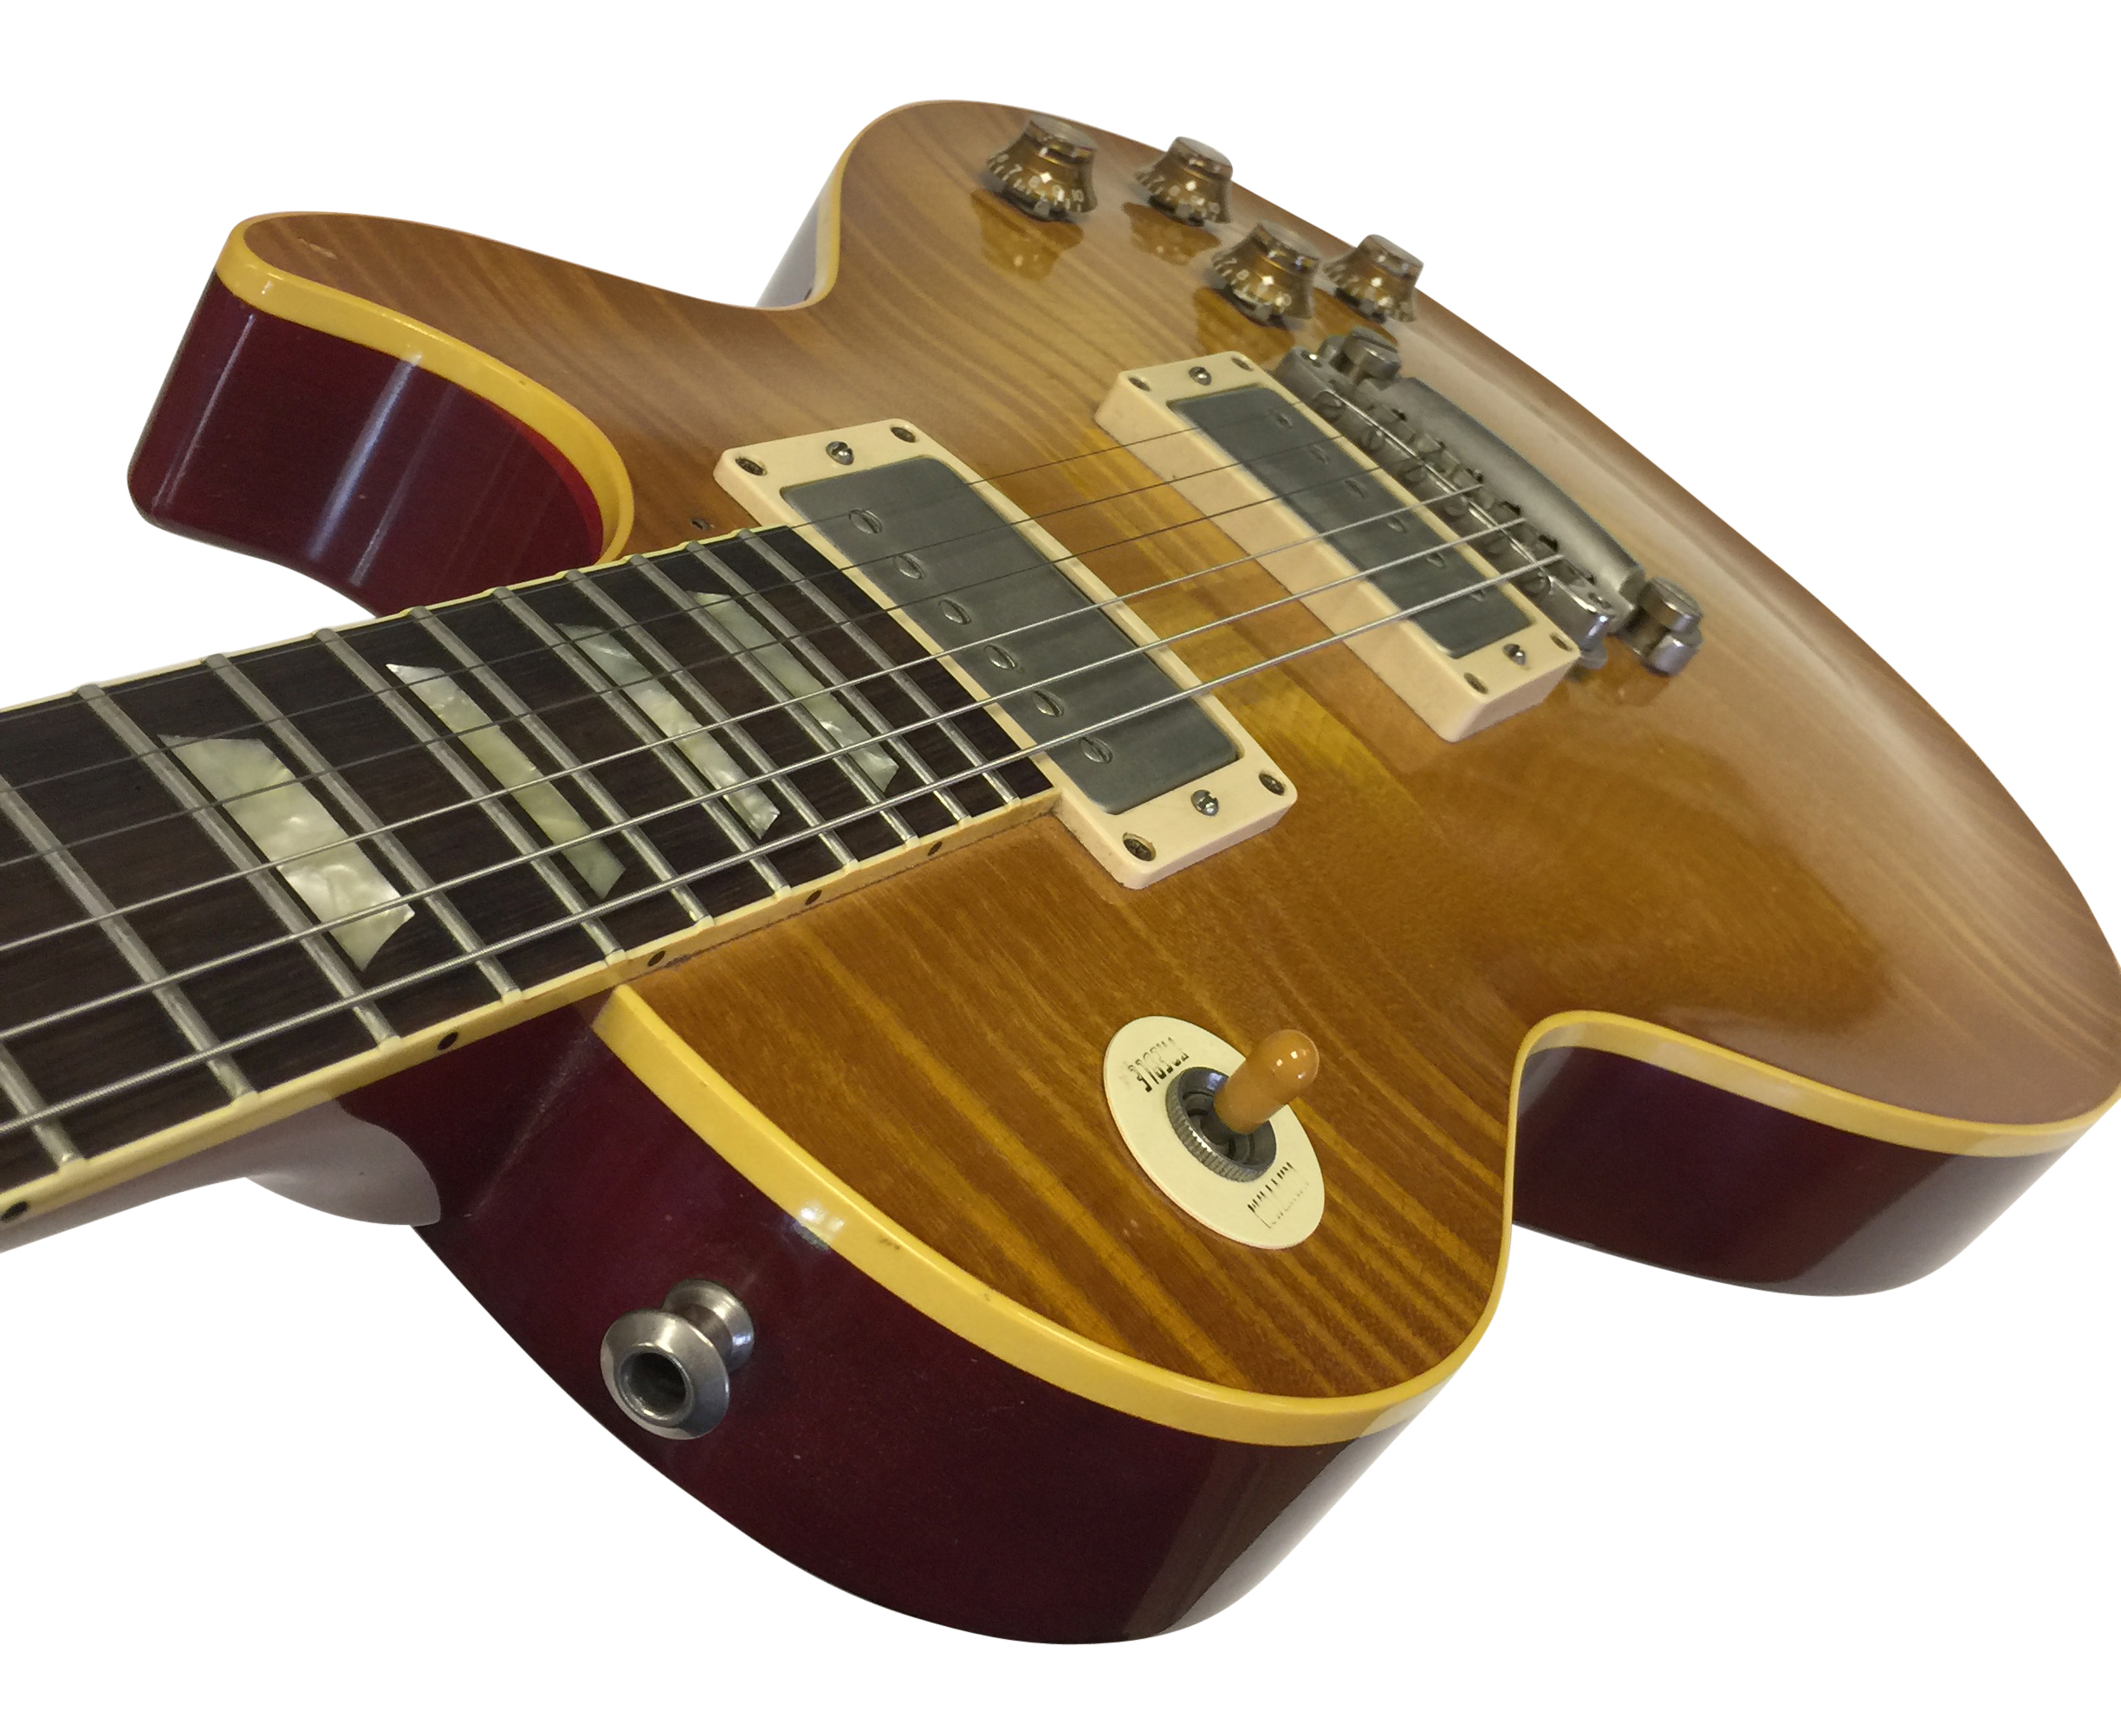 Lot 21 - GIBSON LES PAUL 1959 MAPLE FLAME COPY ELECTRIC GUITAR. In superb condition . Serial 9 1447.